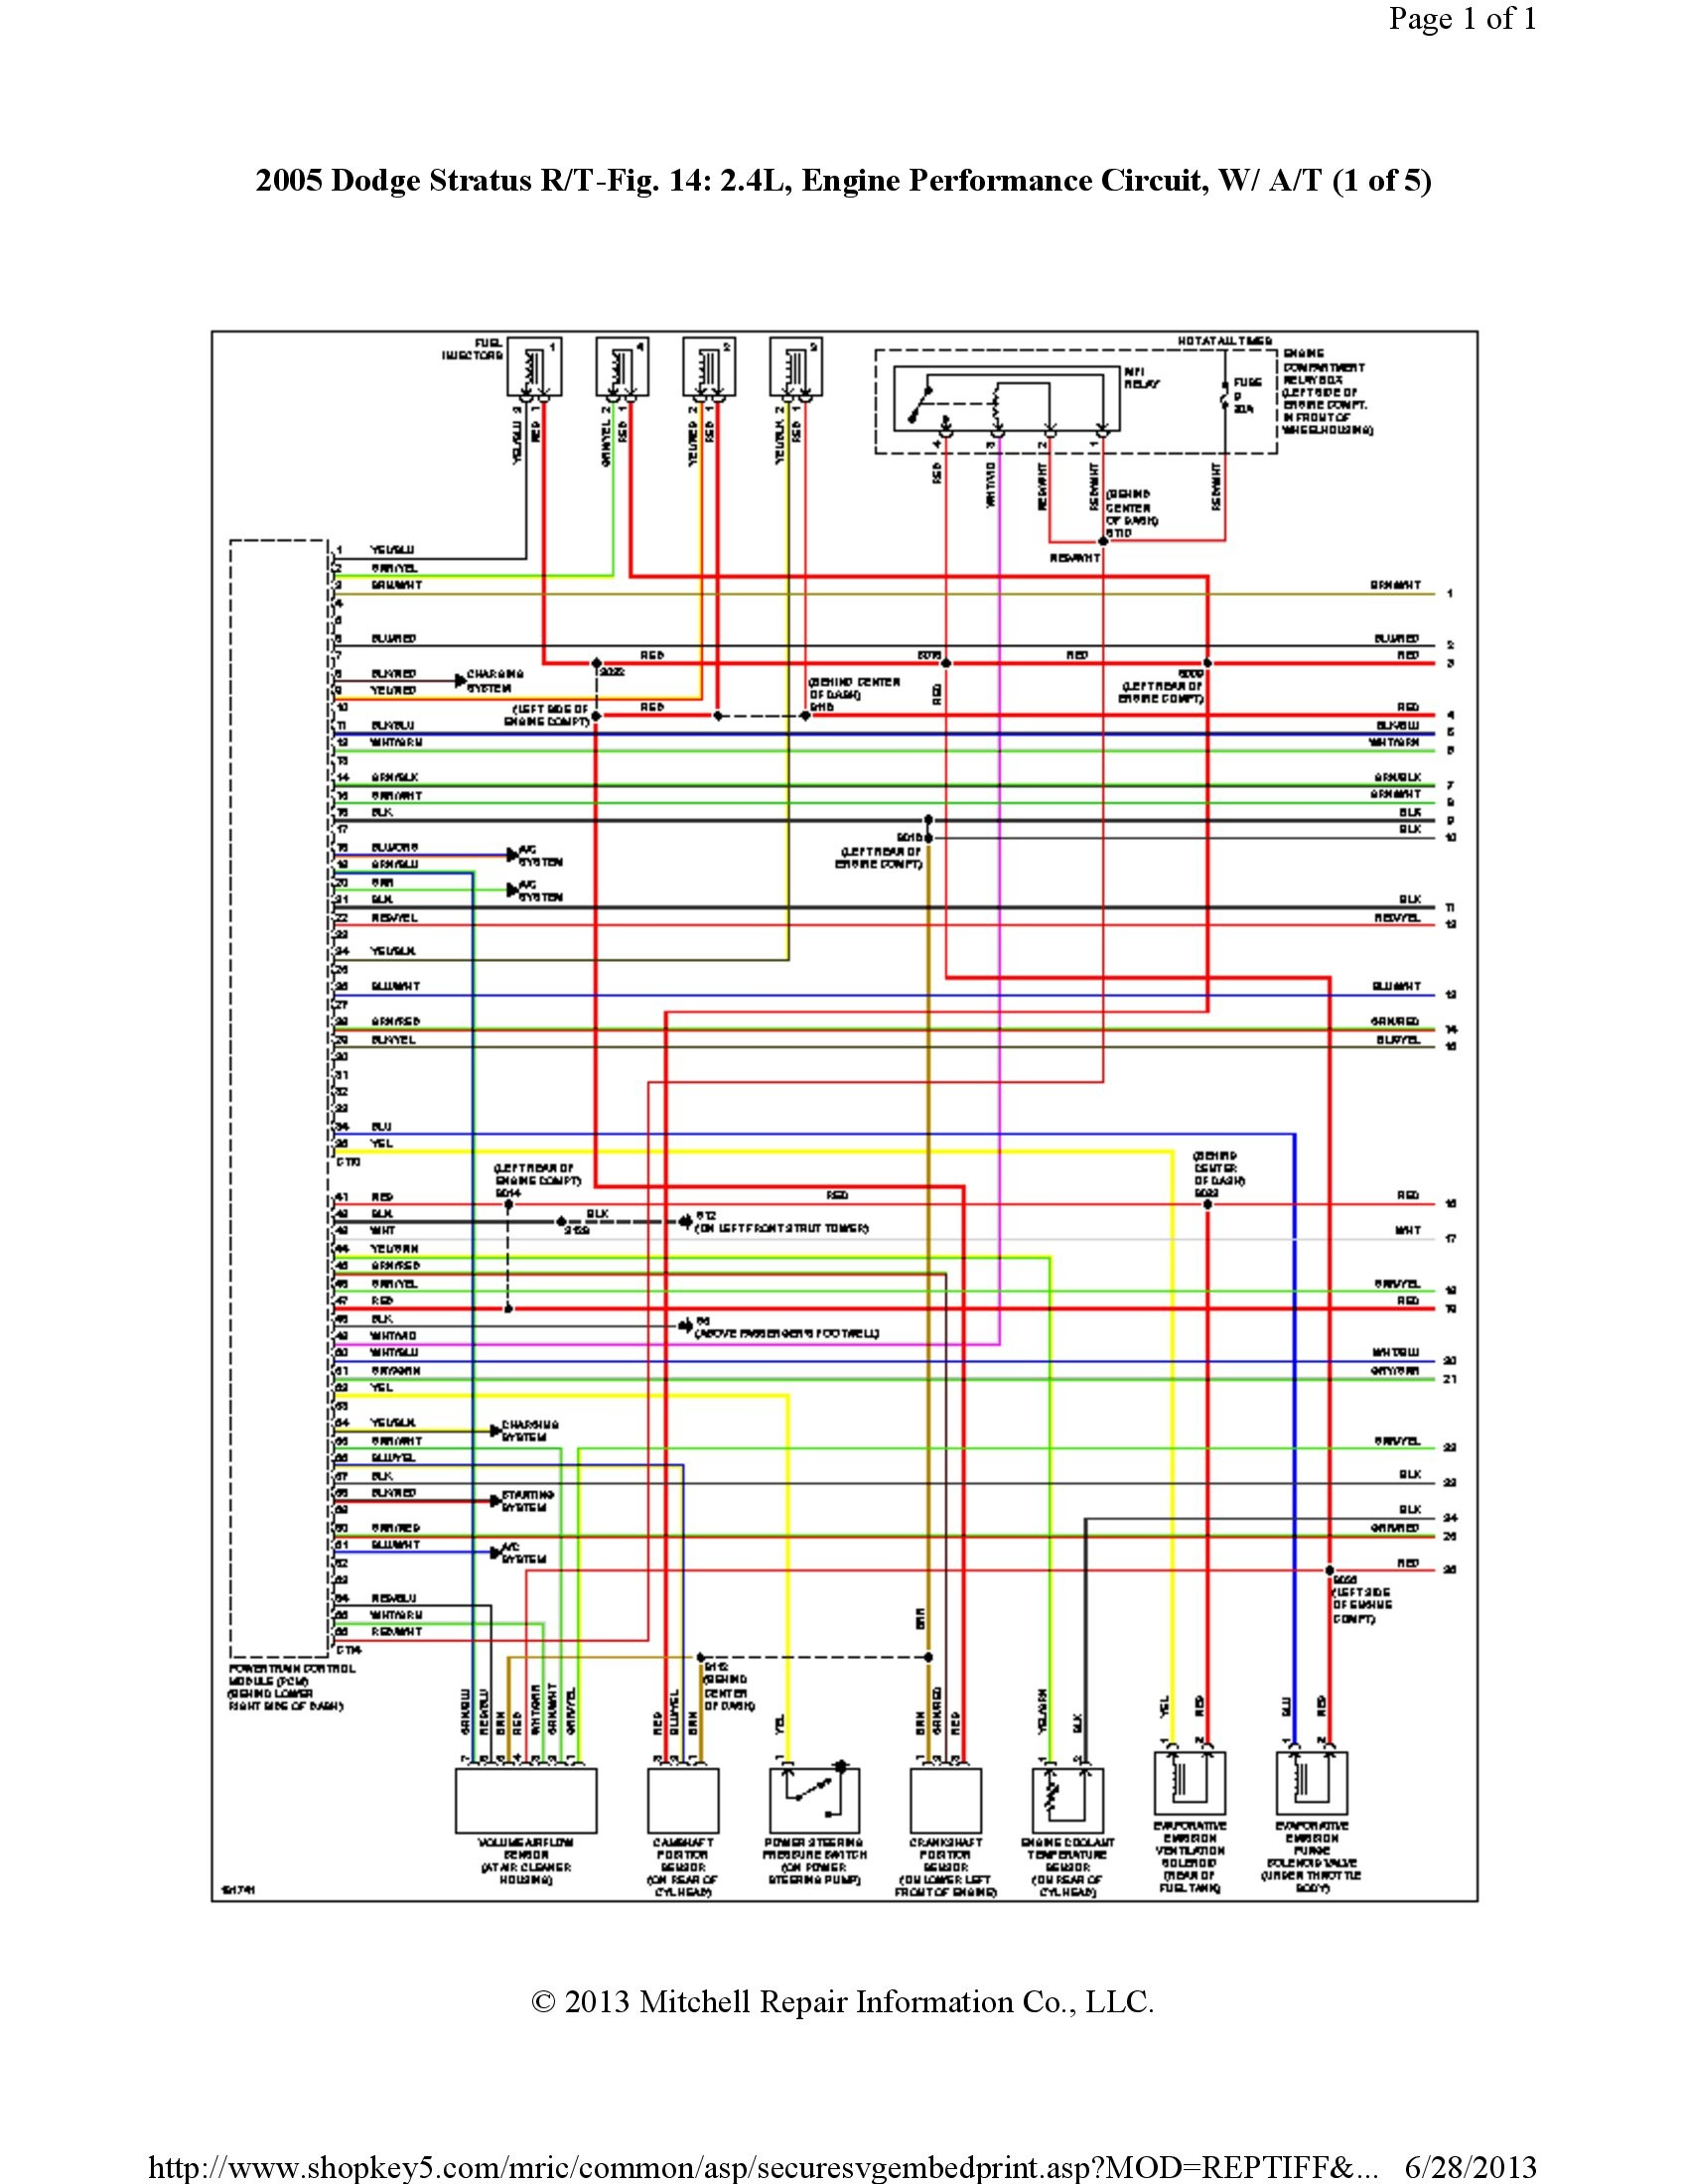 Dodge Stratus Wiring Diagram Stunning 2000 Dodge Dakota Radio Wiring Diagram Gallery Everything Of Dodge Stratus Wiring Diagram